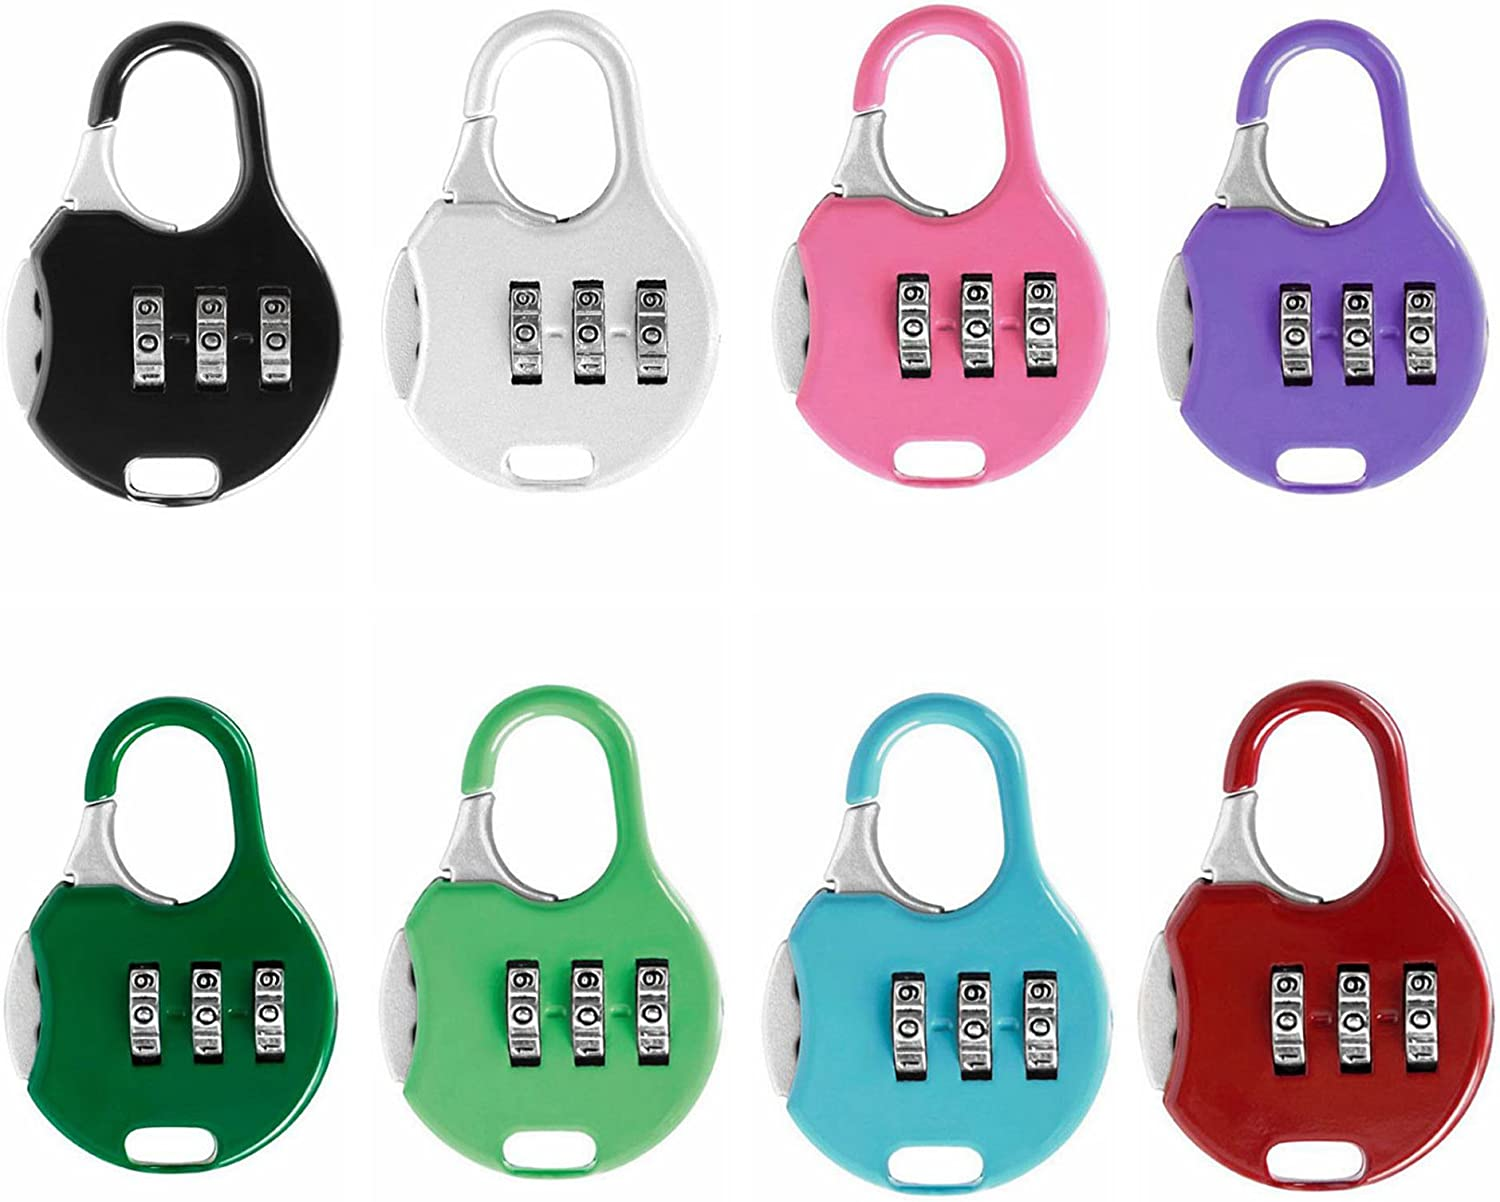 Color Locks 6 Pack ZPING 3 Digit Combinations Padlock the Safe Cipher Lock Resettable Code Lock